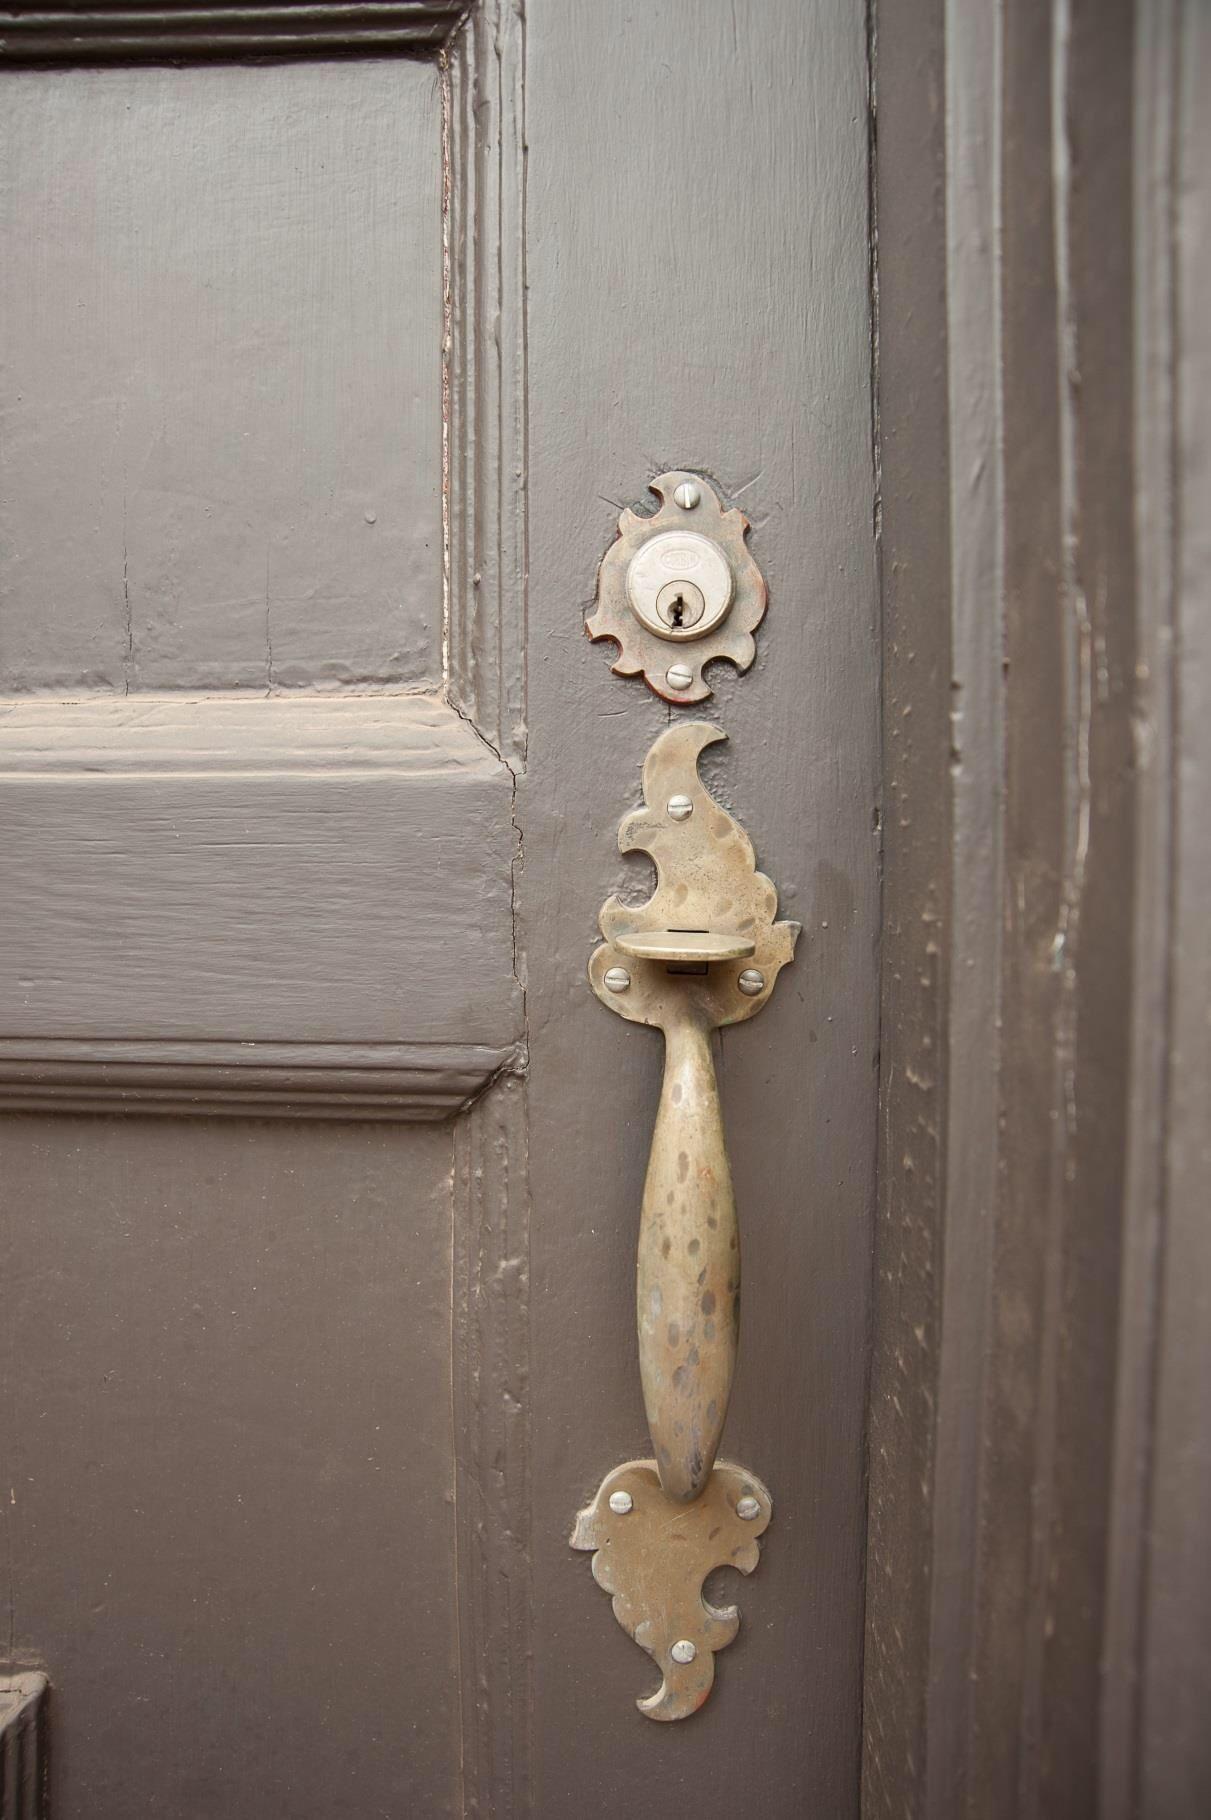 Pin By Tmb On Texas Architects House Design Door Handles Design